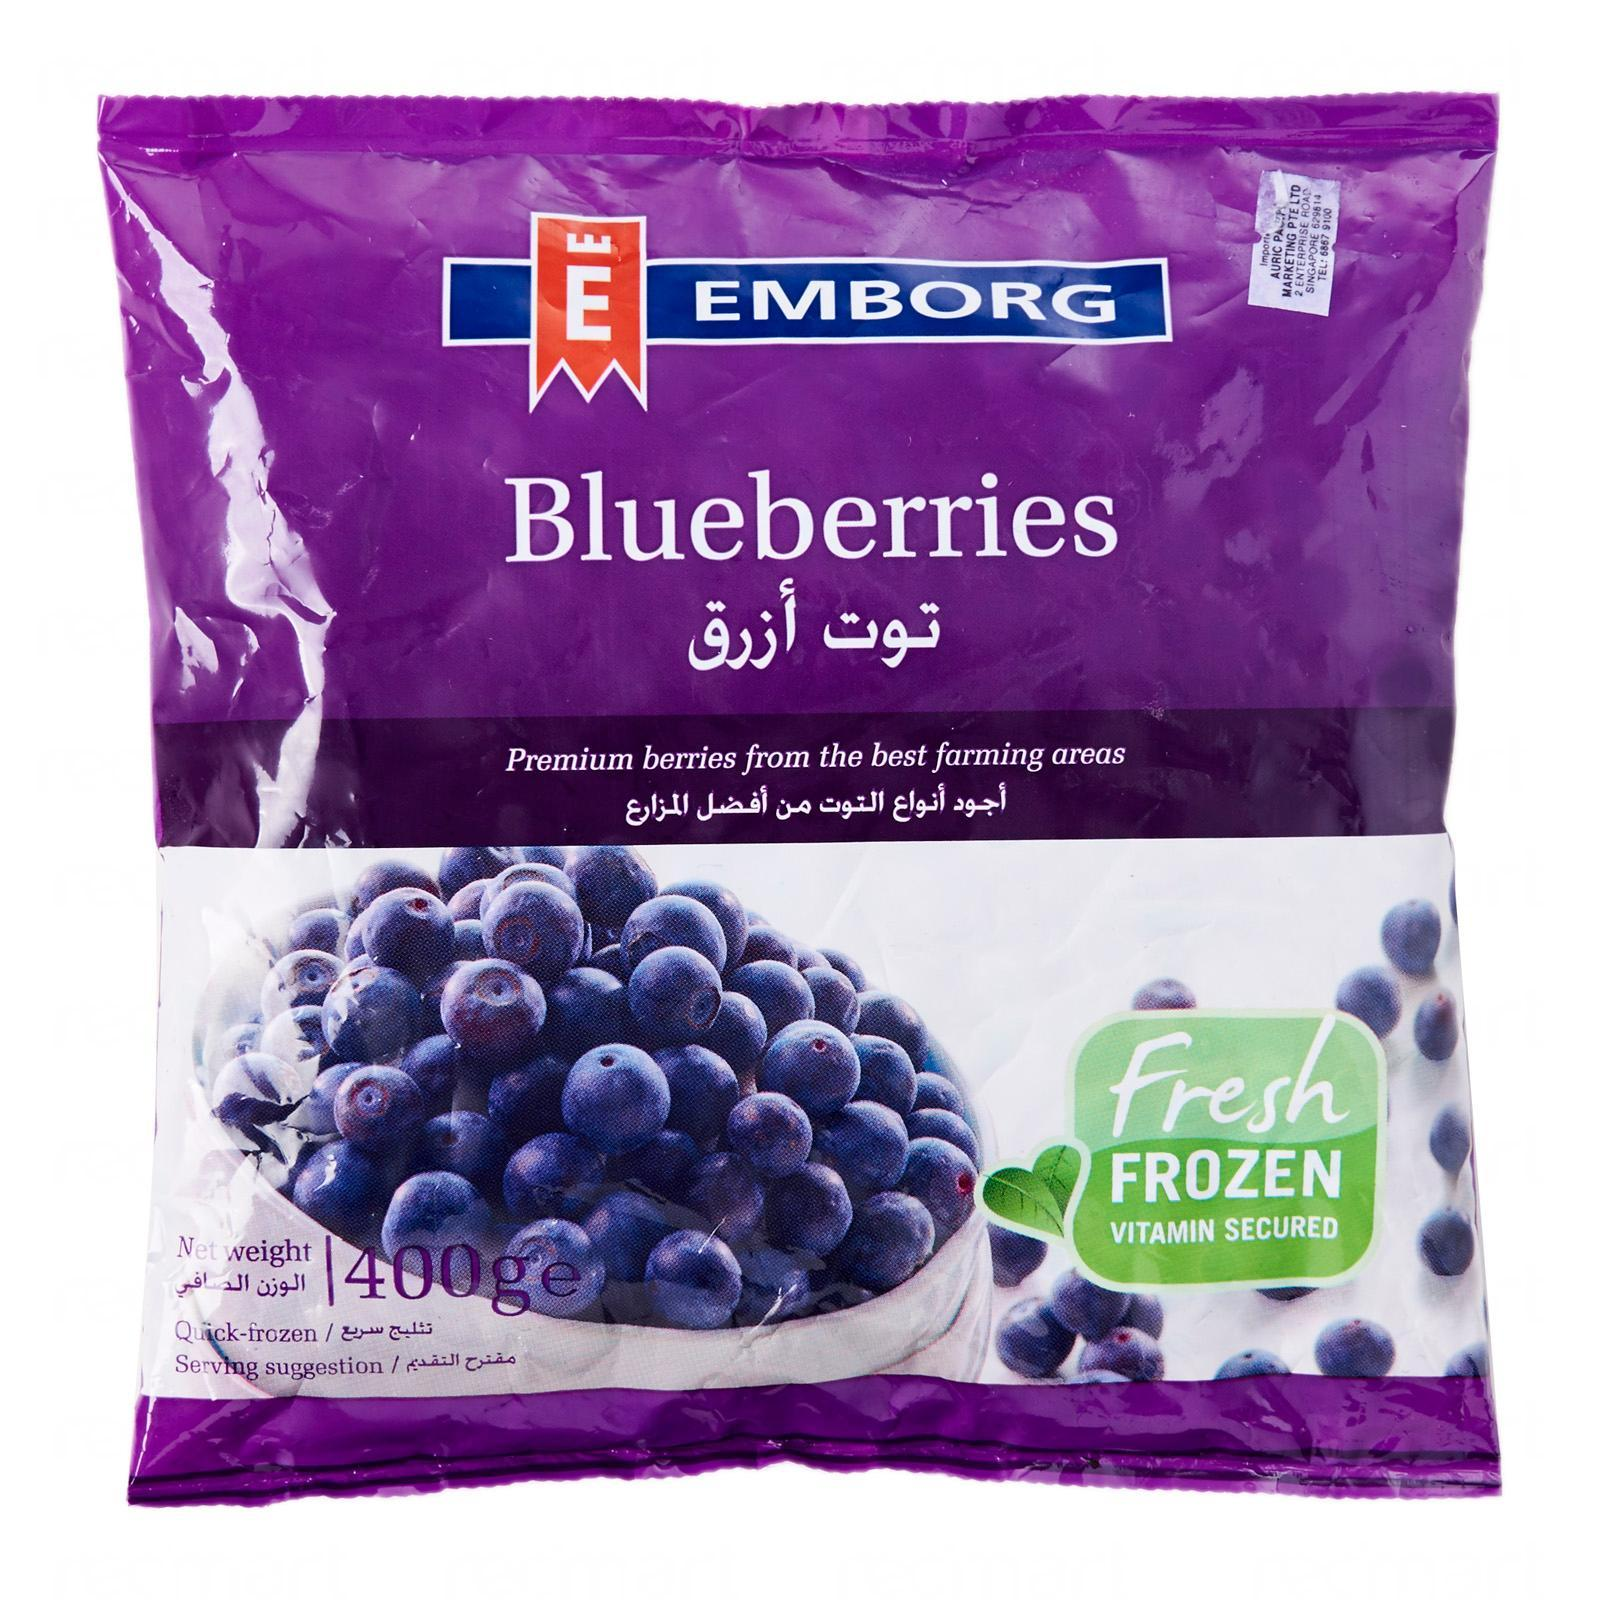 Emborg Blueberries - Frozen